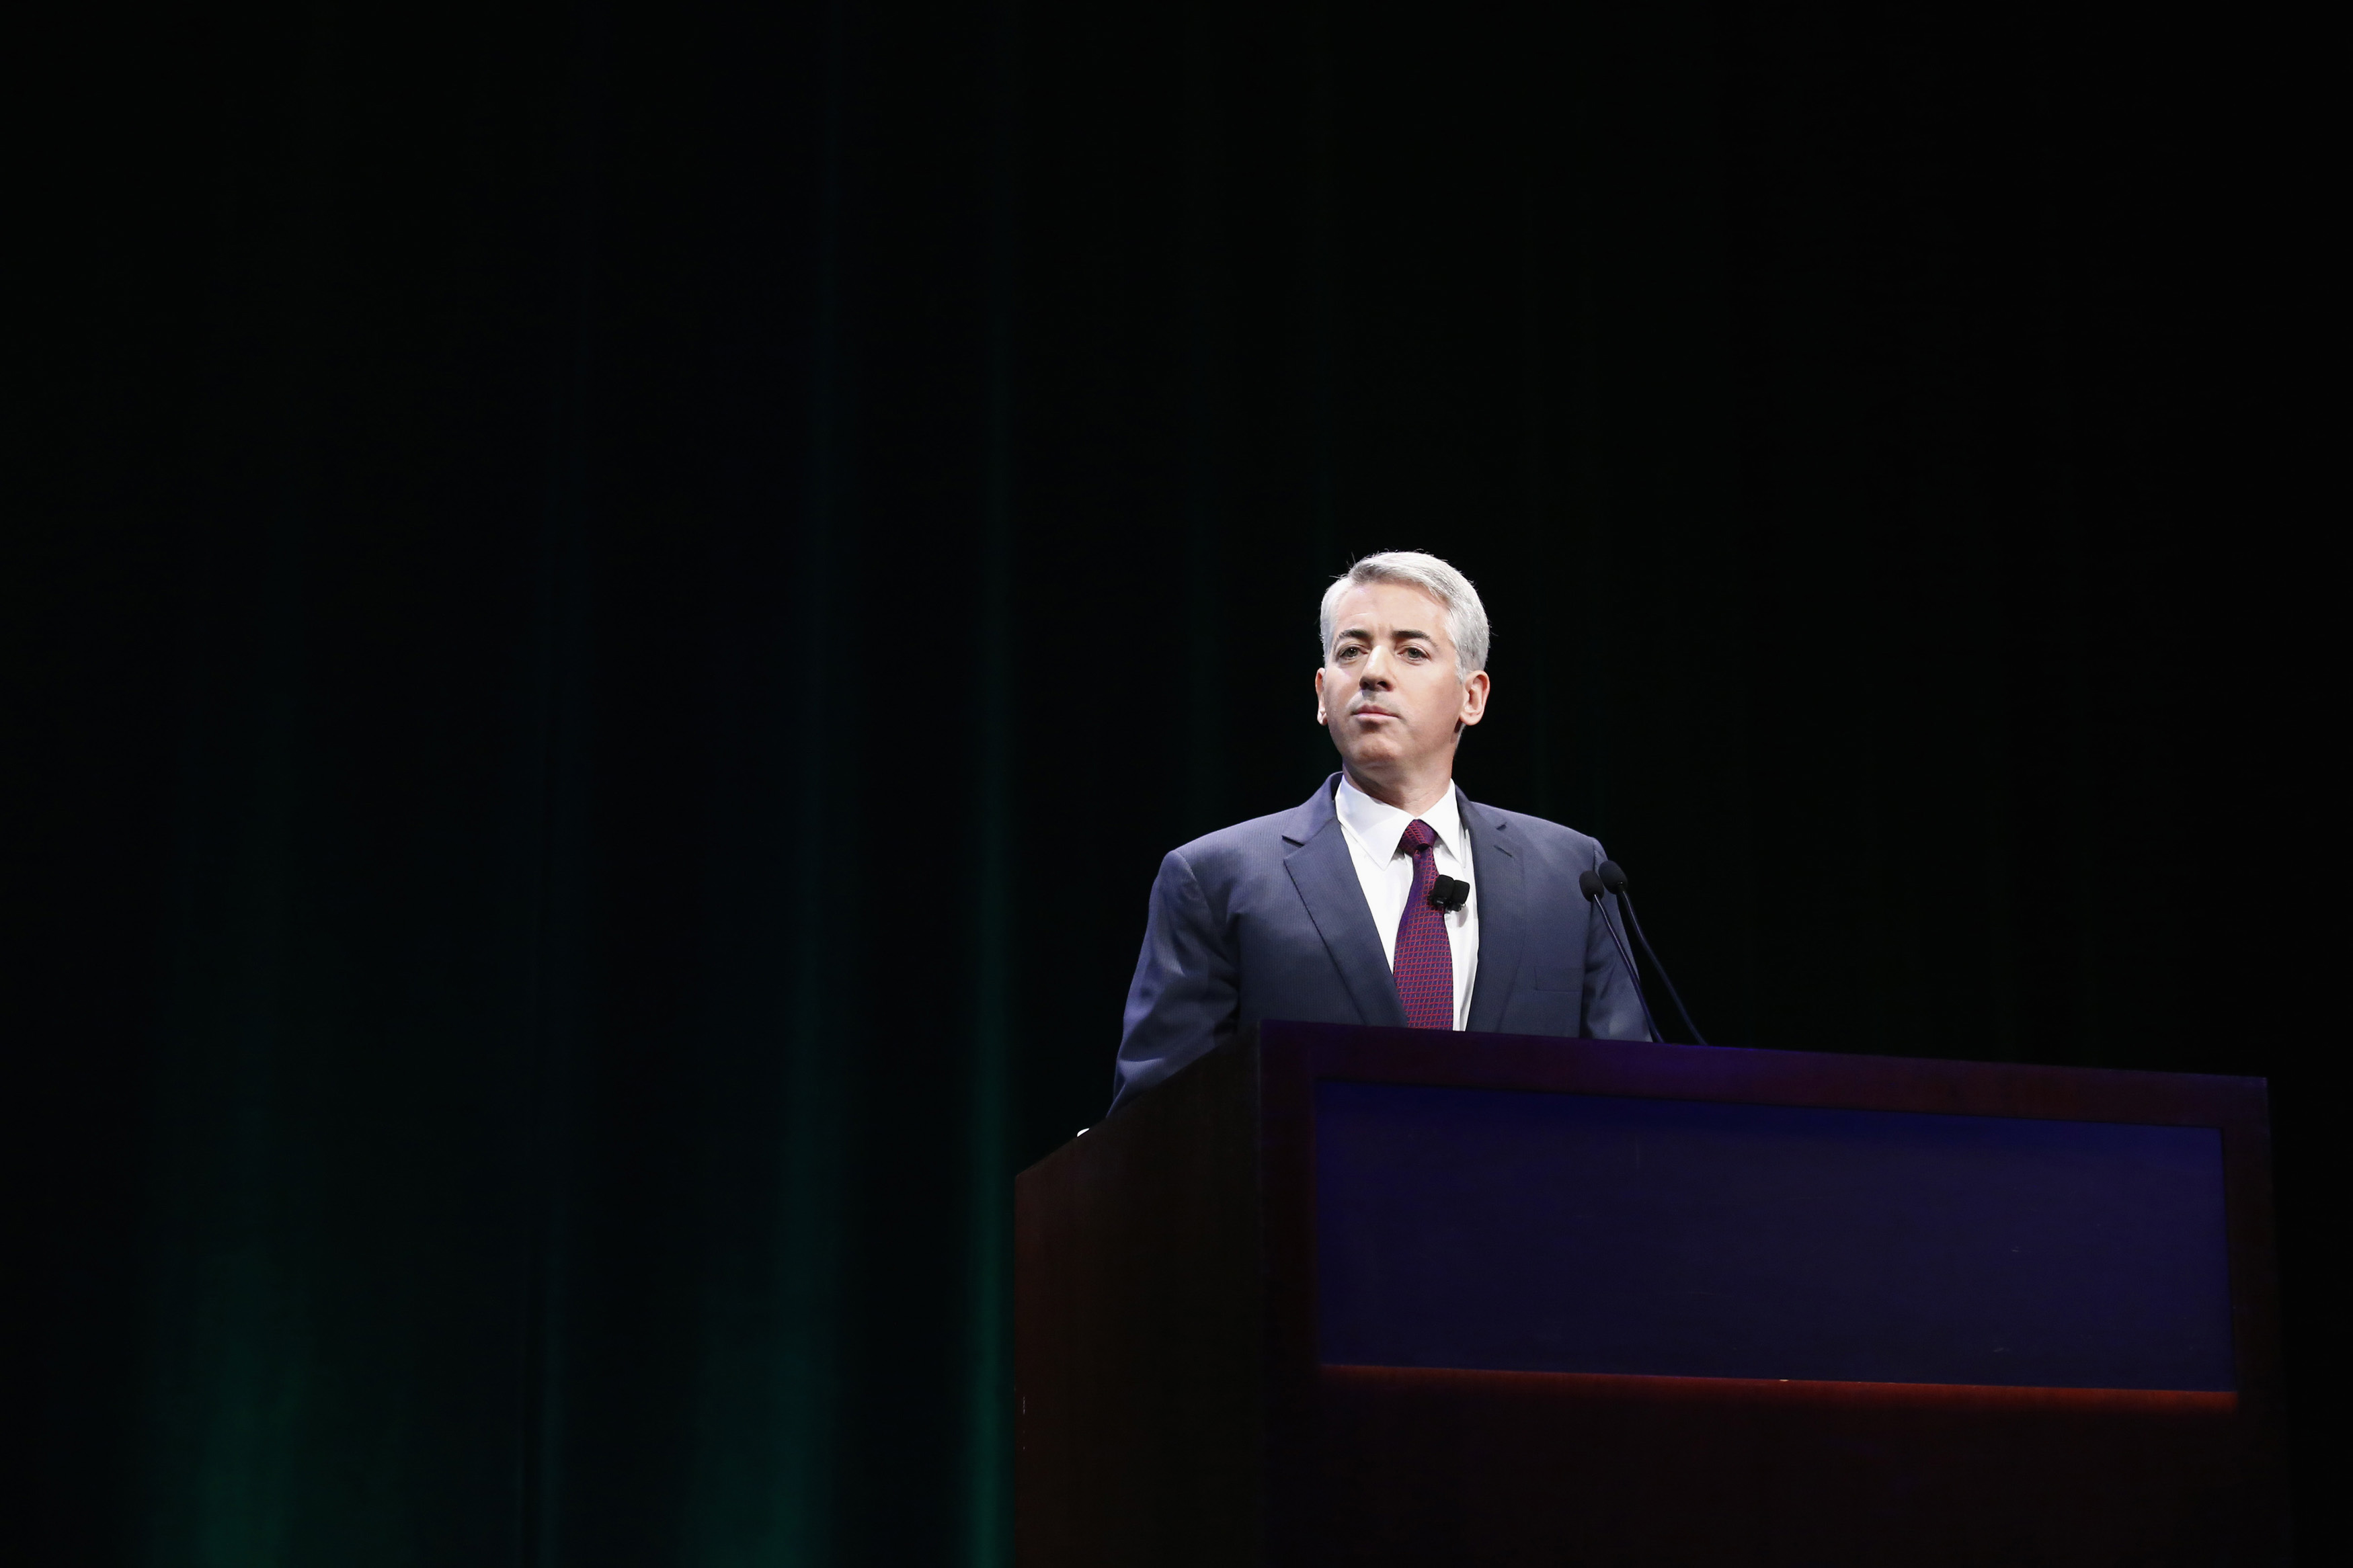 Ackman, founder and CEO of hedge fund Pershing Square Capital Management, speaks to audience in New York